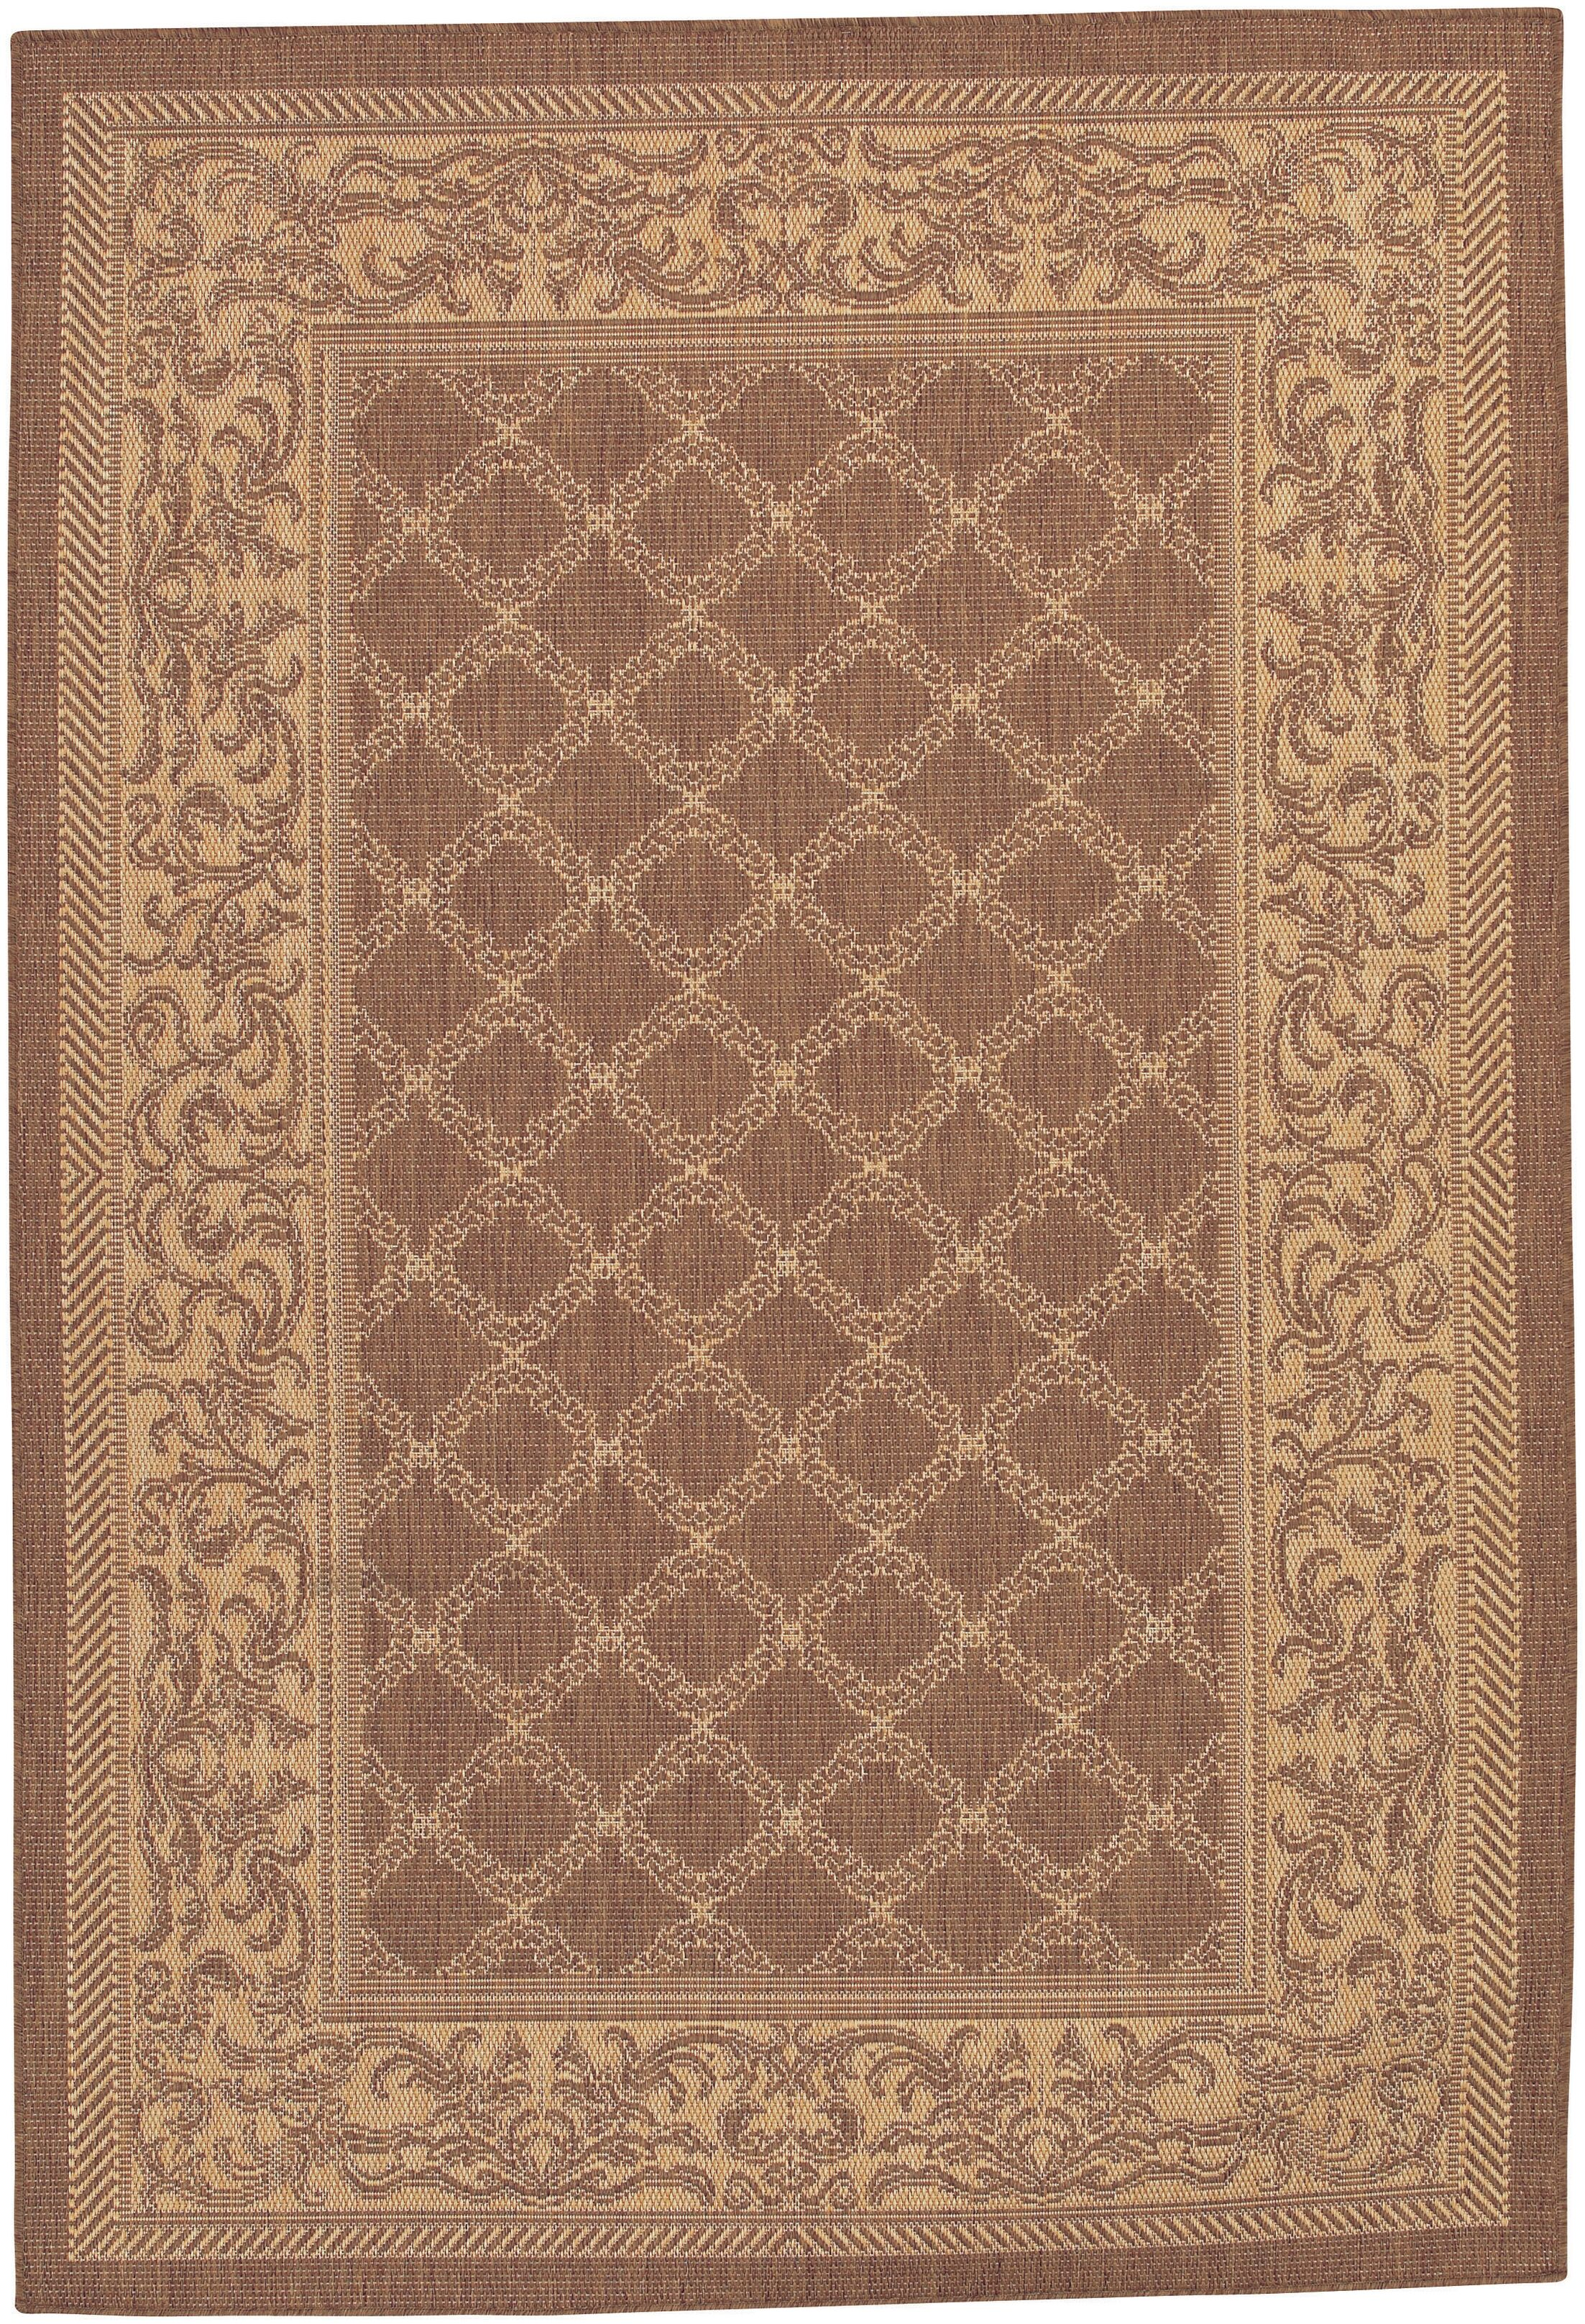 Celia Cocoa/Natural Indoor/Outdoor Area Rug Rug Size: Rectangle 8'6